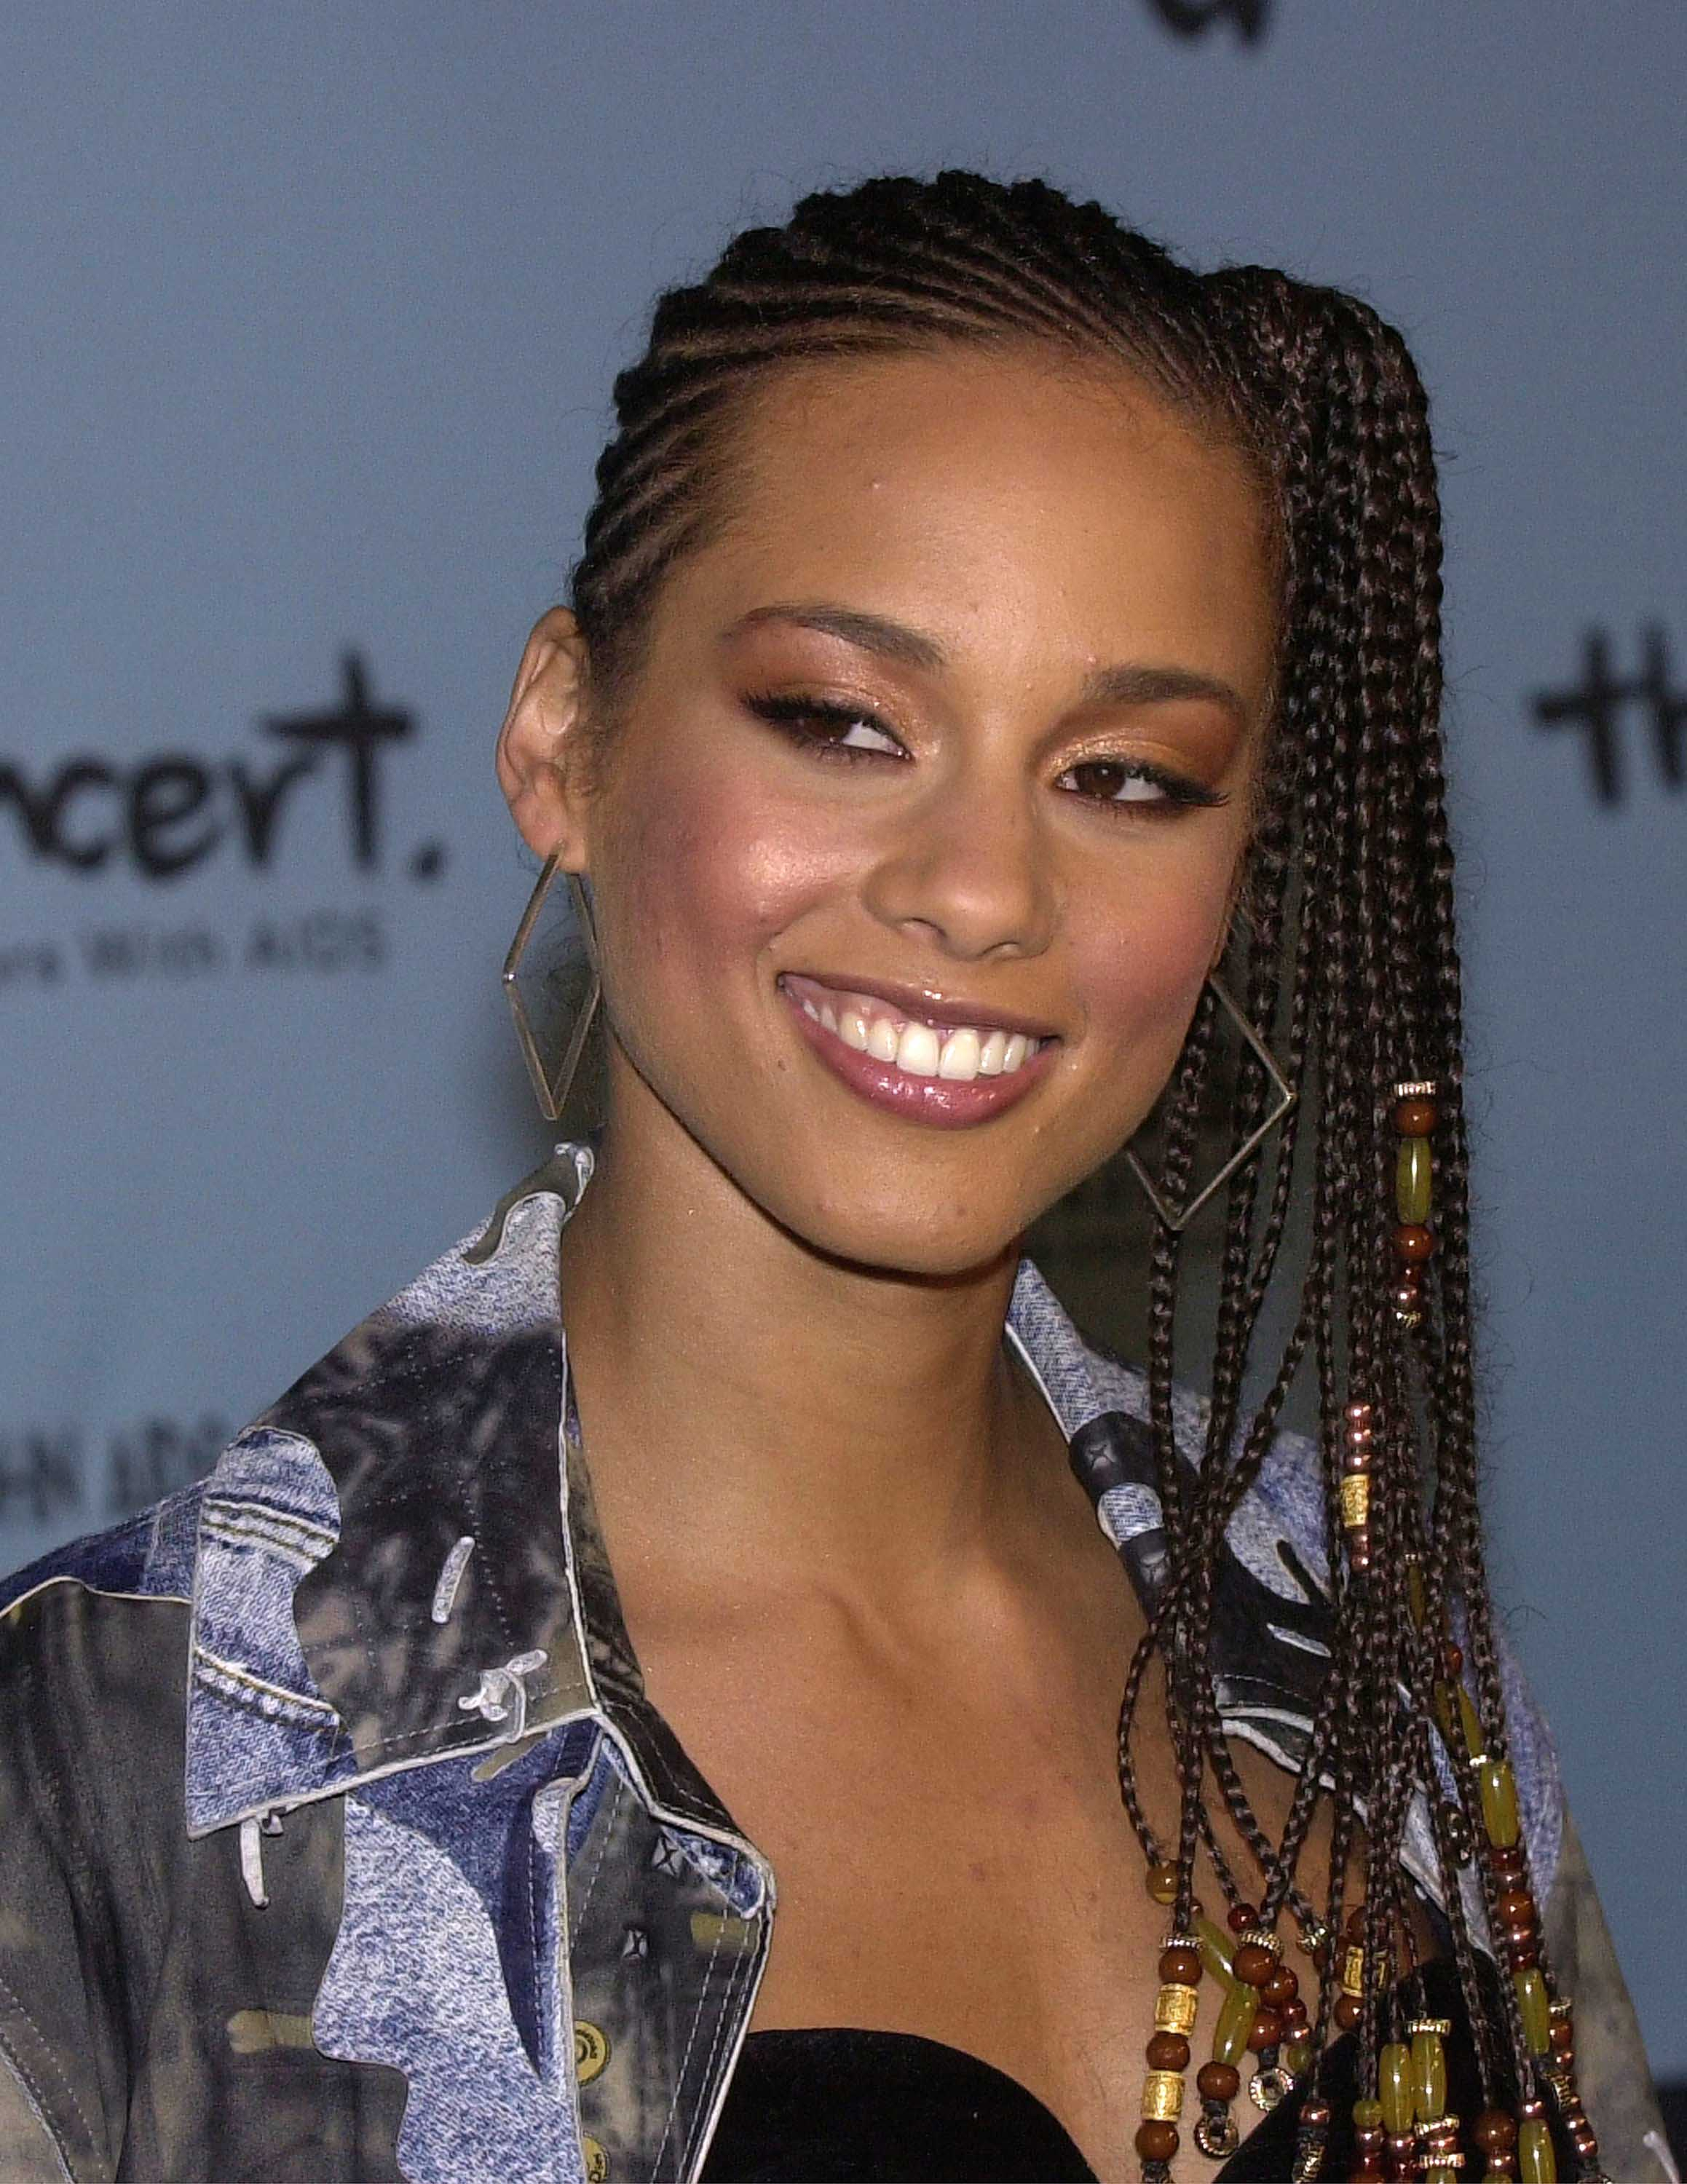 Black history month hairstyles: Close up of Alicia Keys with side cornrows styled into a side ponytail, wearing denim jacket and posing on the red carpet